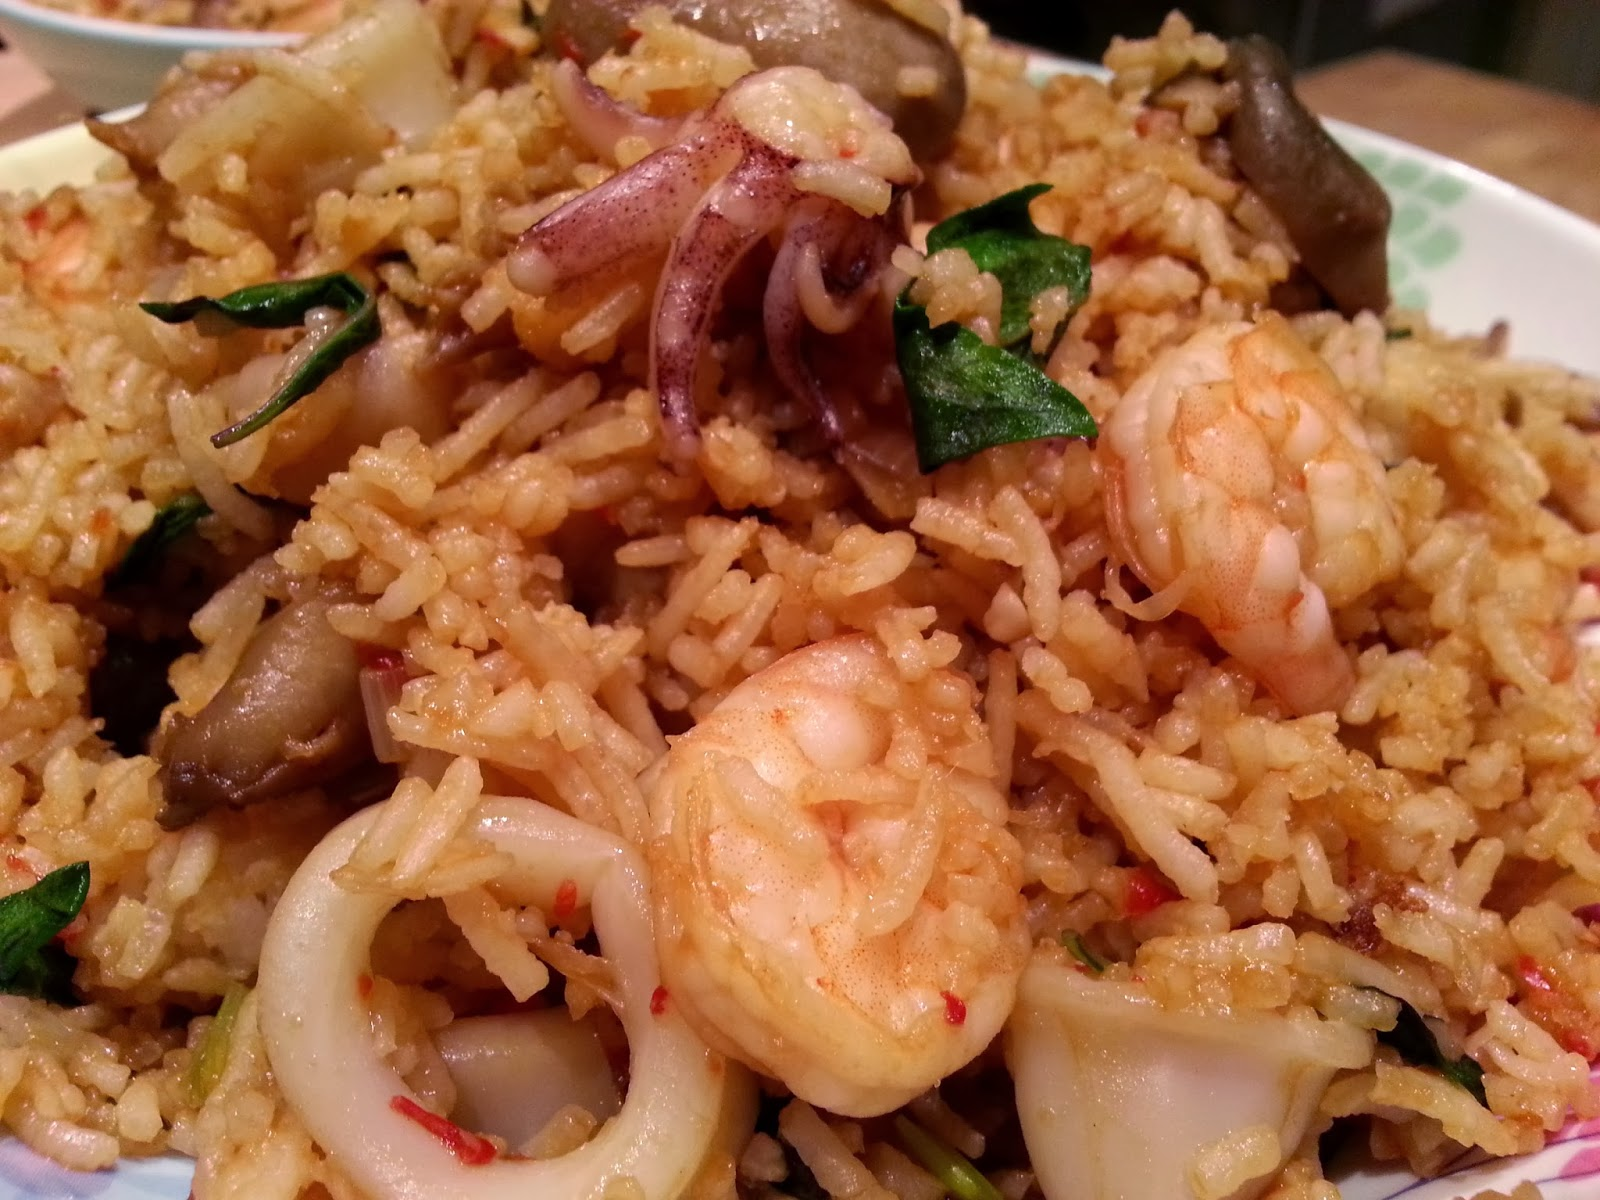 Slimming world delights thai basil and seafood fried rice thai basil and seafood fried rice i adore thai food and knowing i can make it virtually syn free on slimming world is fab ccuart Image collections